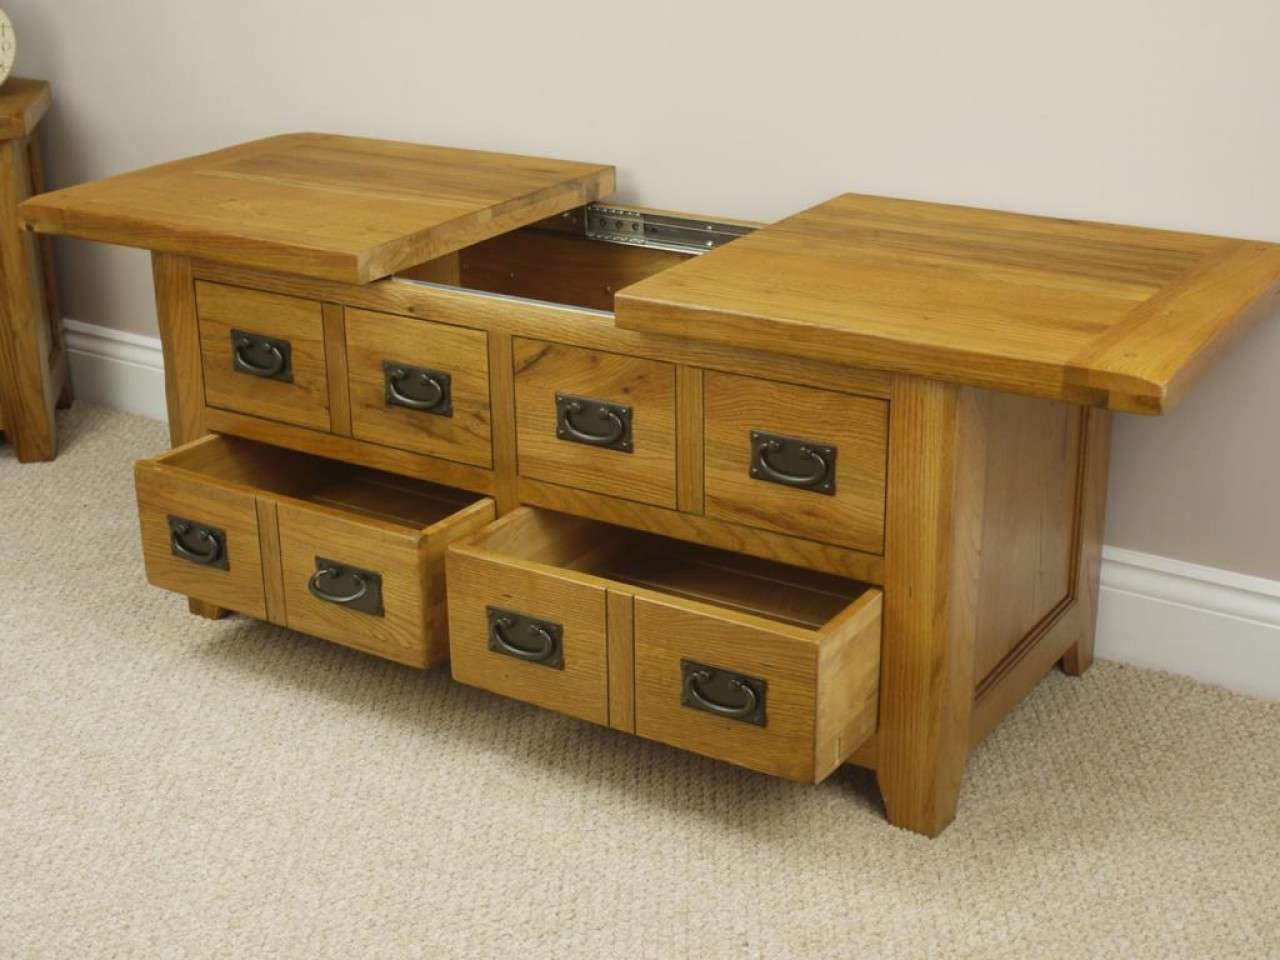 Rustic Storage Coffee Table Style — Home Design Ideas Intended For Recent Square Coffee Tables With Storage (View 16 of 20)